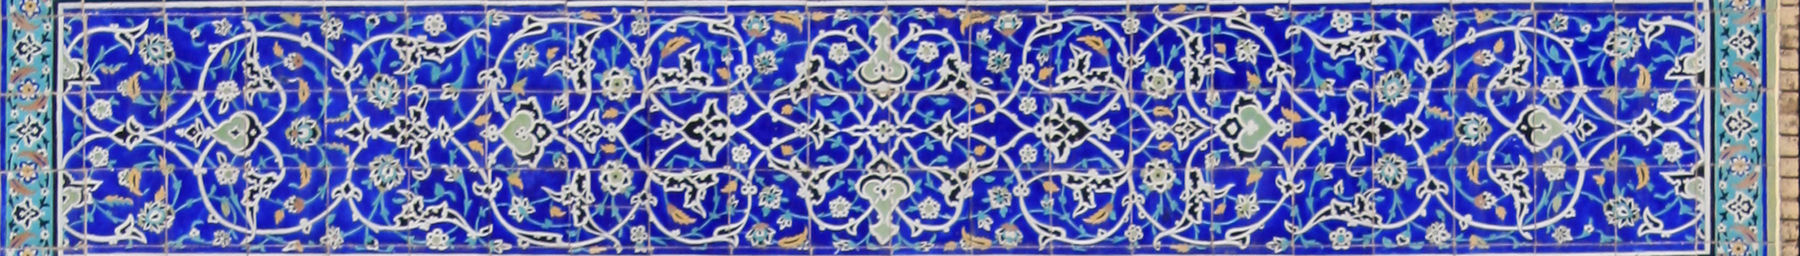 Tiles of Sheikh Lotf Allah Mosque